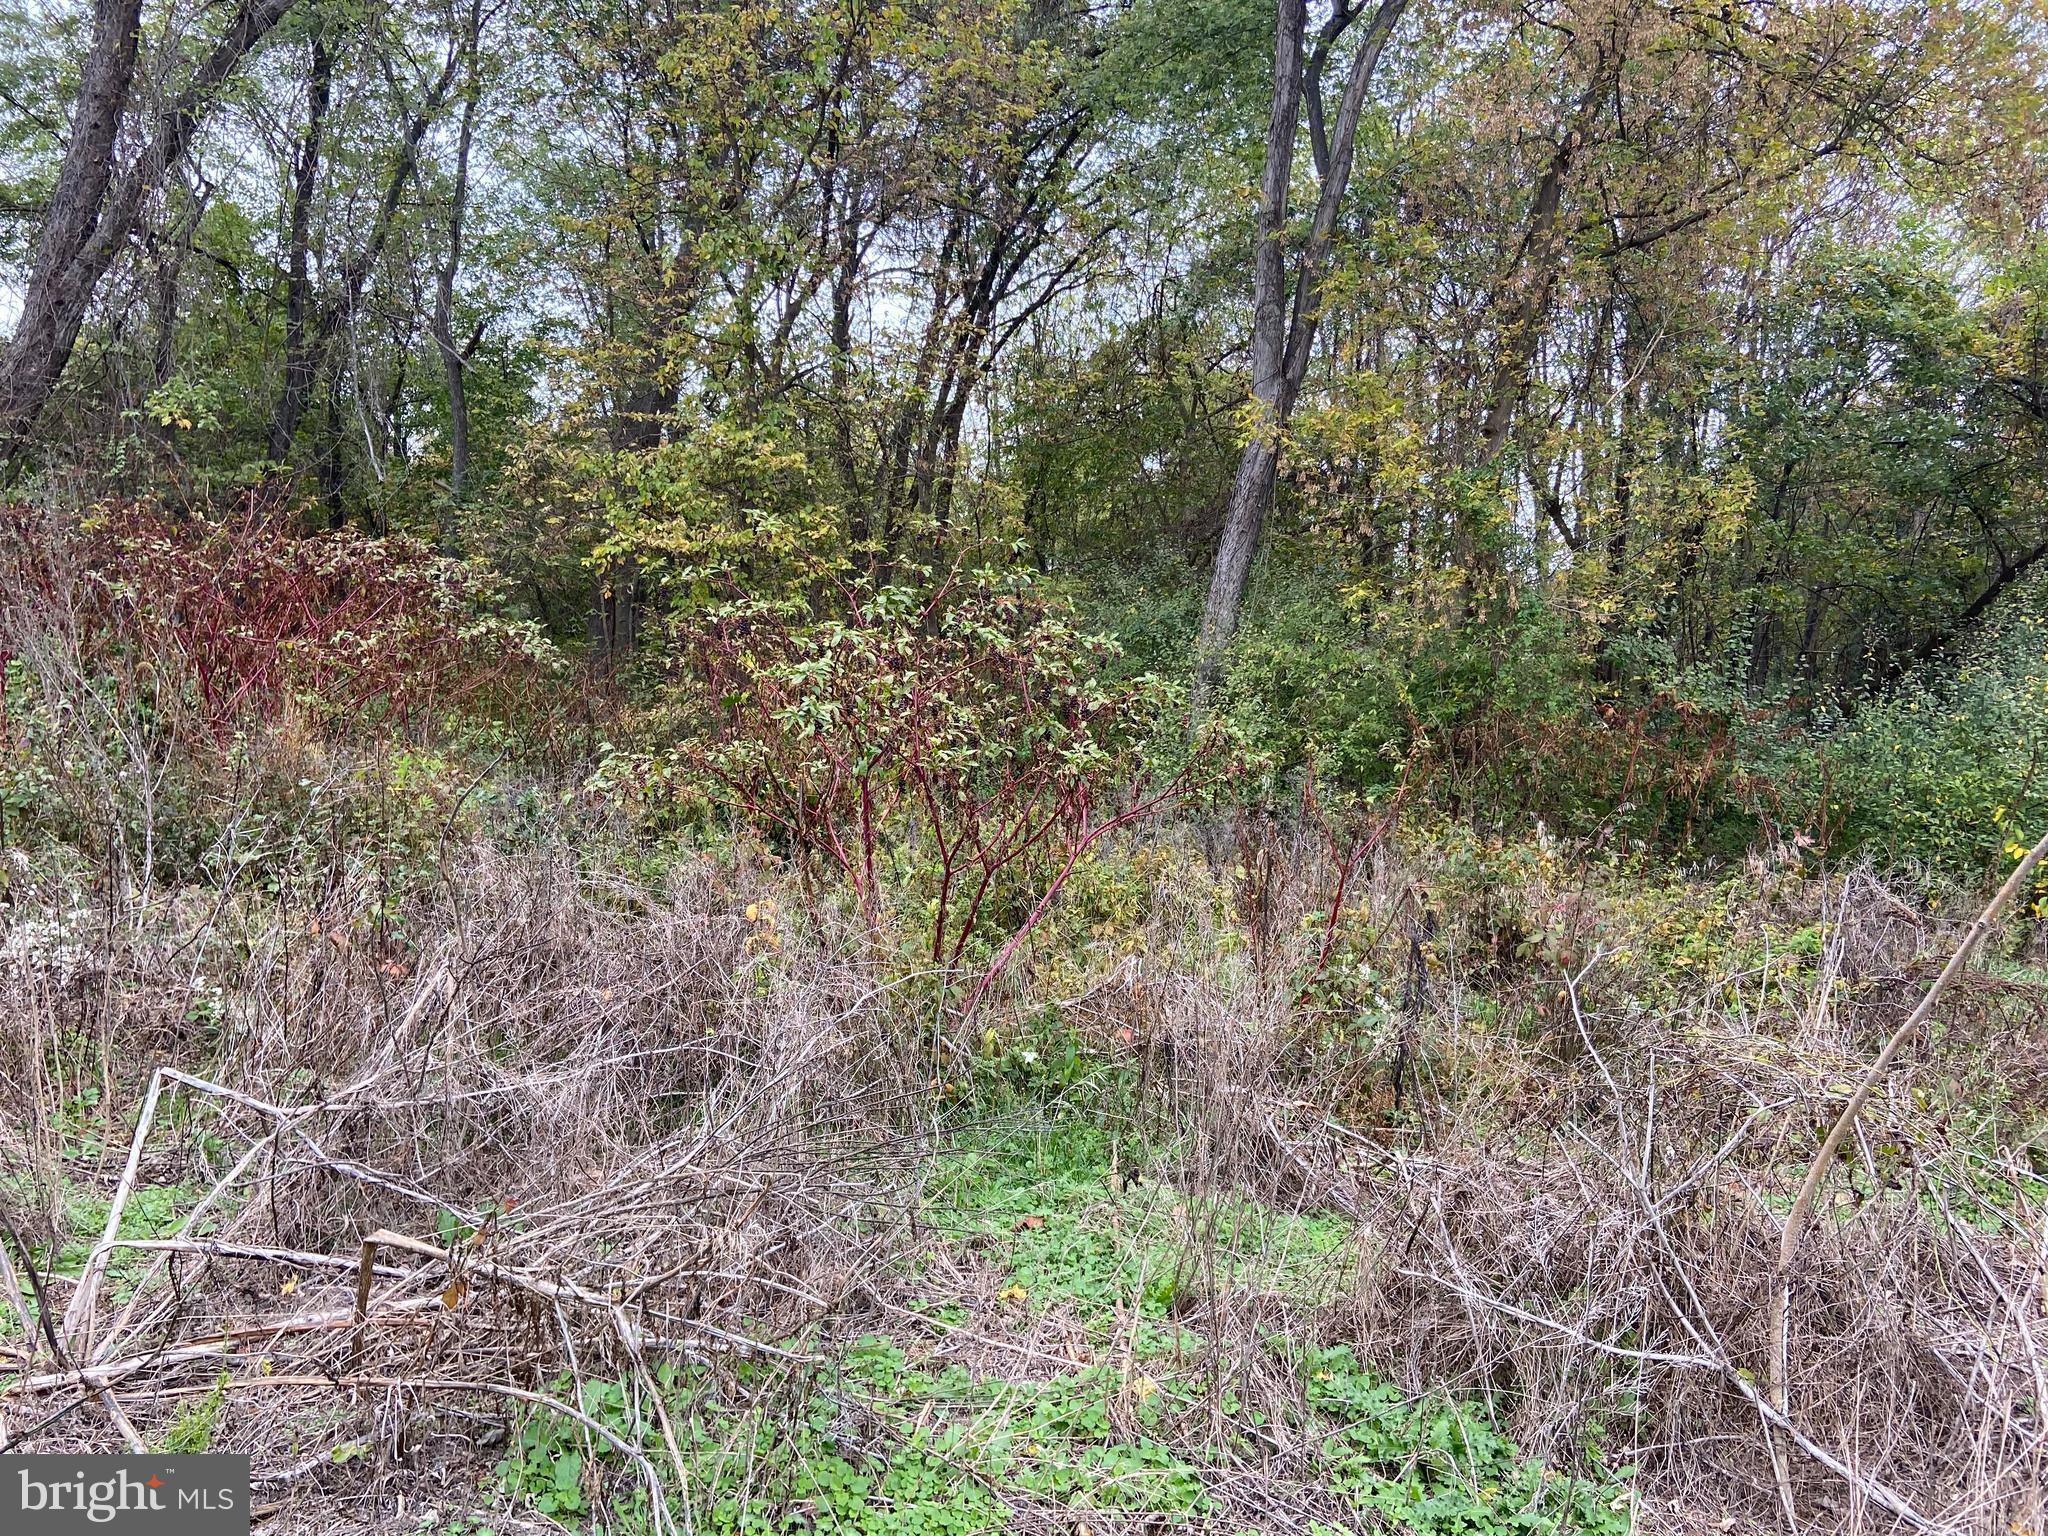 Rare 2 acre  lot in Mechlenburg Heights! Pretty much all wooded! City water but will need perked for a septic system.  Only 5 minutes from Shepherd University and the corporation  of Shepherdstown.   OWNERS SAY BRING THEM OFFERS!